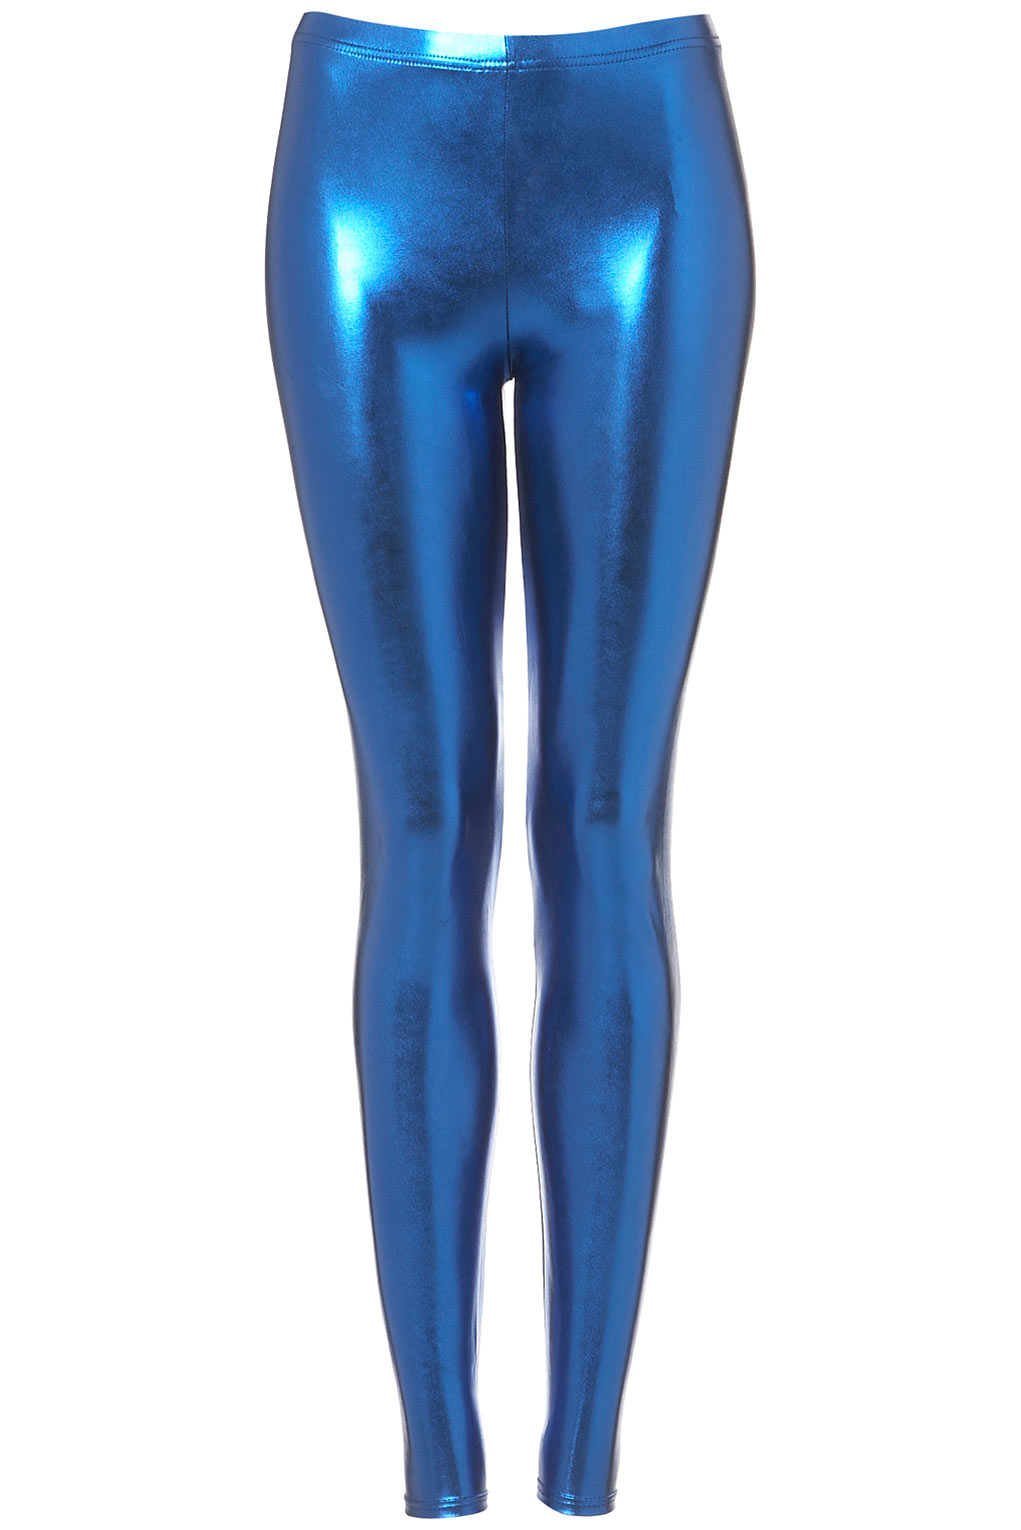 You searched for: blue shiny leggings! Etsy is the home to thousands of handmade, vintage, and one-of-a-kind products and gifts related to your search. No matter what you're looking for or where you are in the world, our global marketplace of sellers can help you find unique and affordable options.